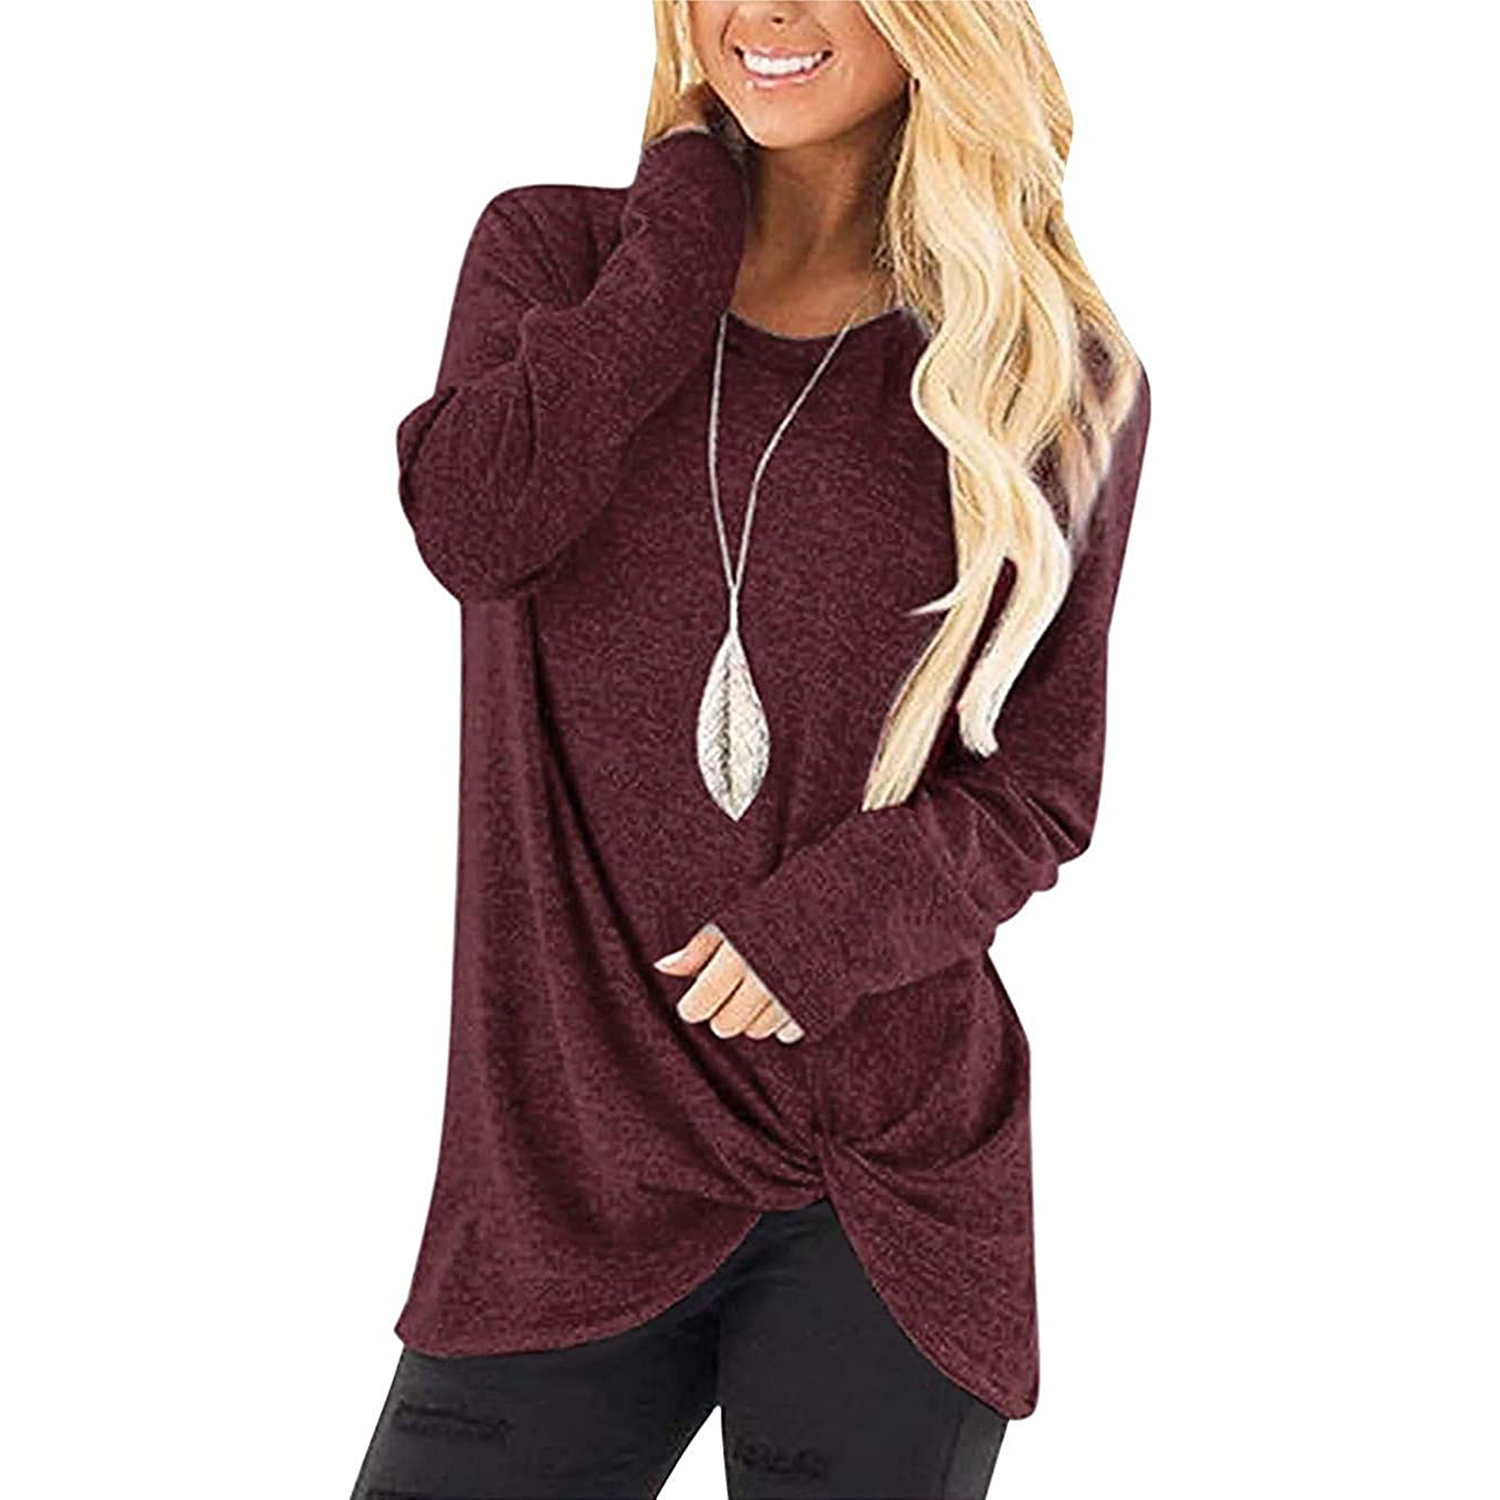 MarinaPrime Womens Waffle Knit/Cotton Blend Twist Knot Pullover